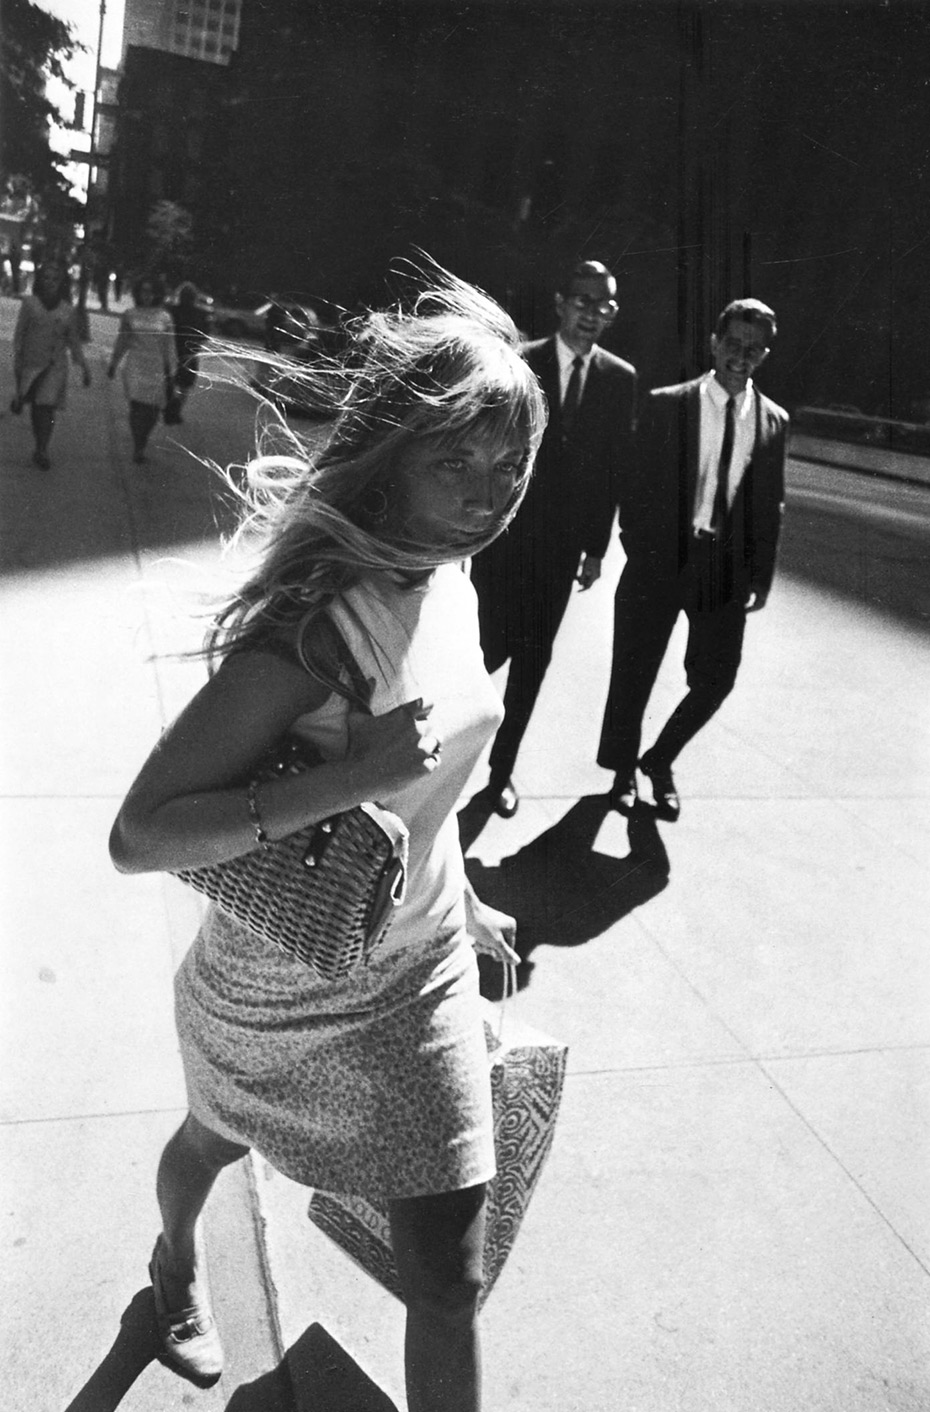 014-phototgrapher-garry-winogrand